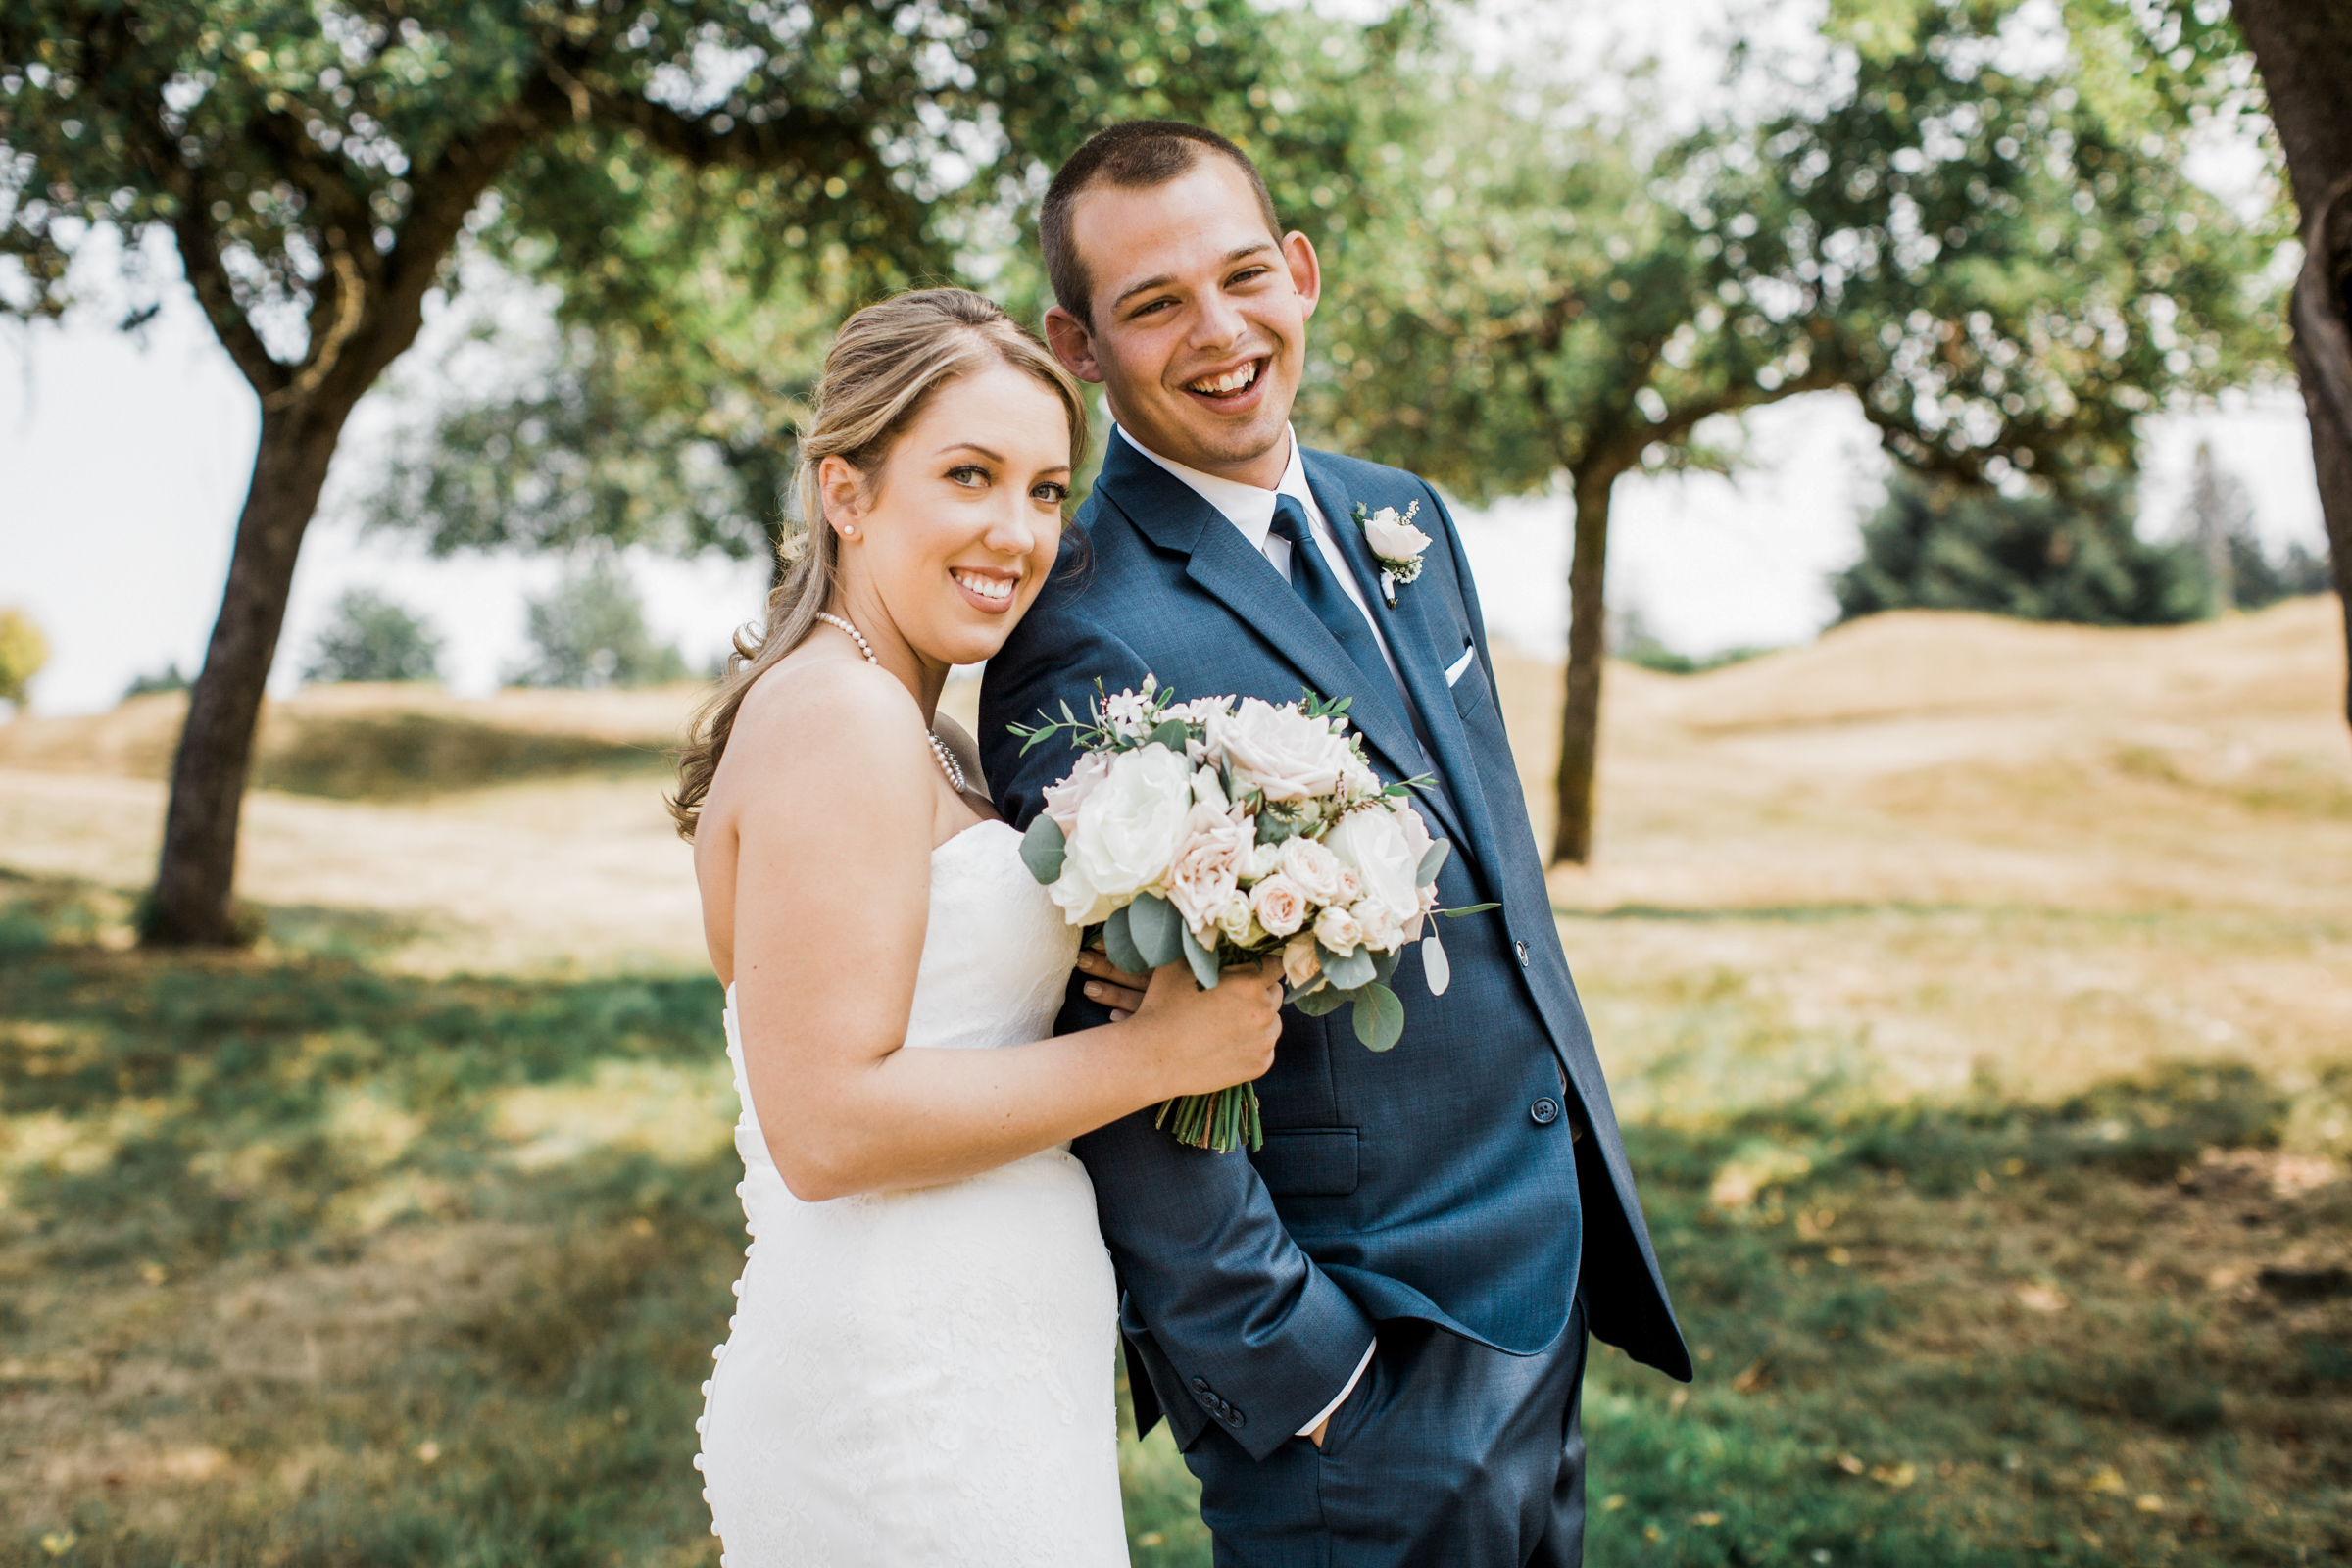 Couple portrait at golf course - photo by Stephanie Cristalli Photography